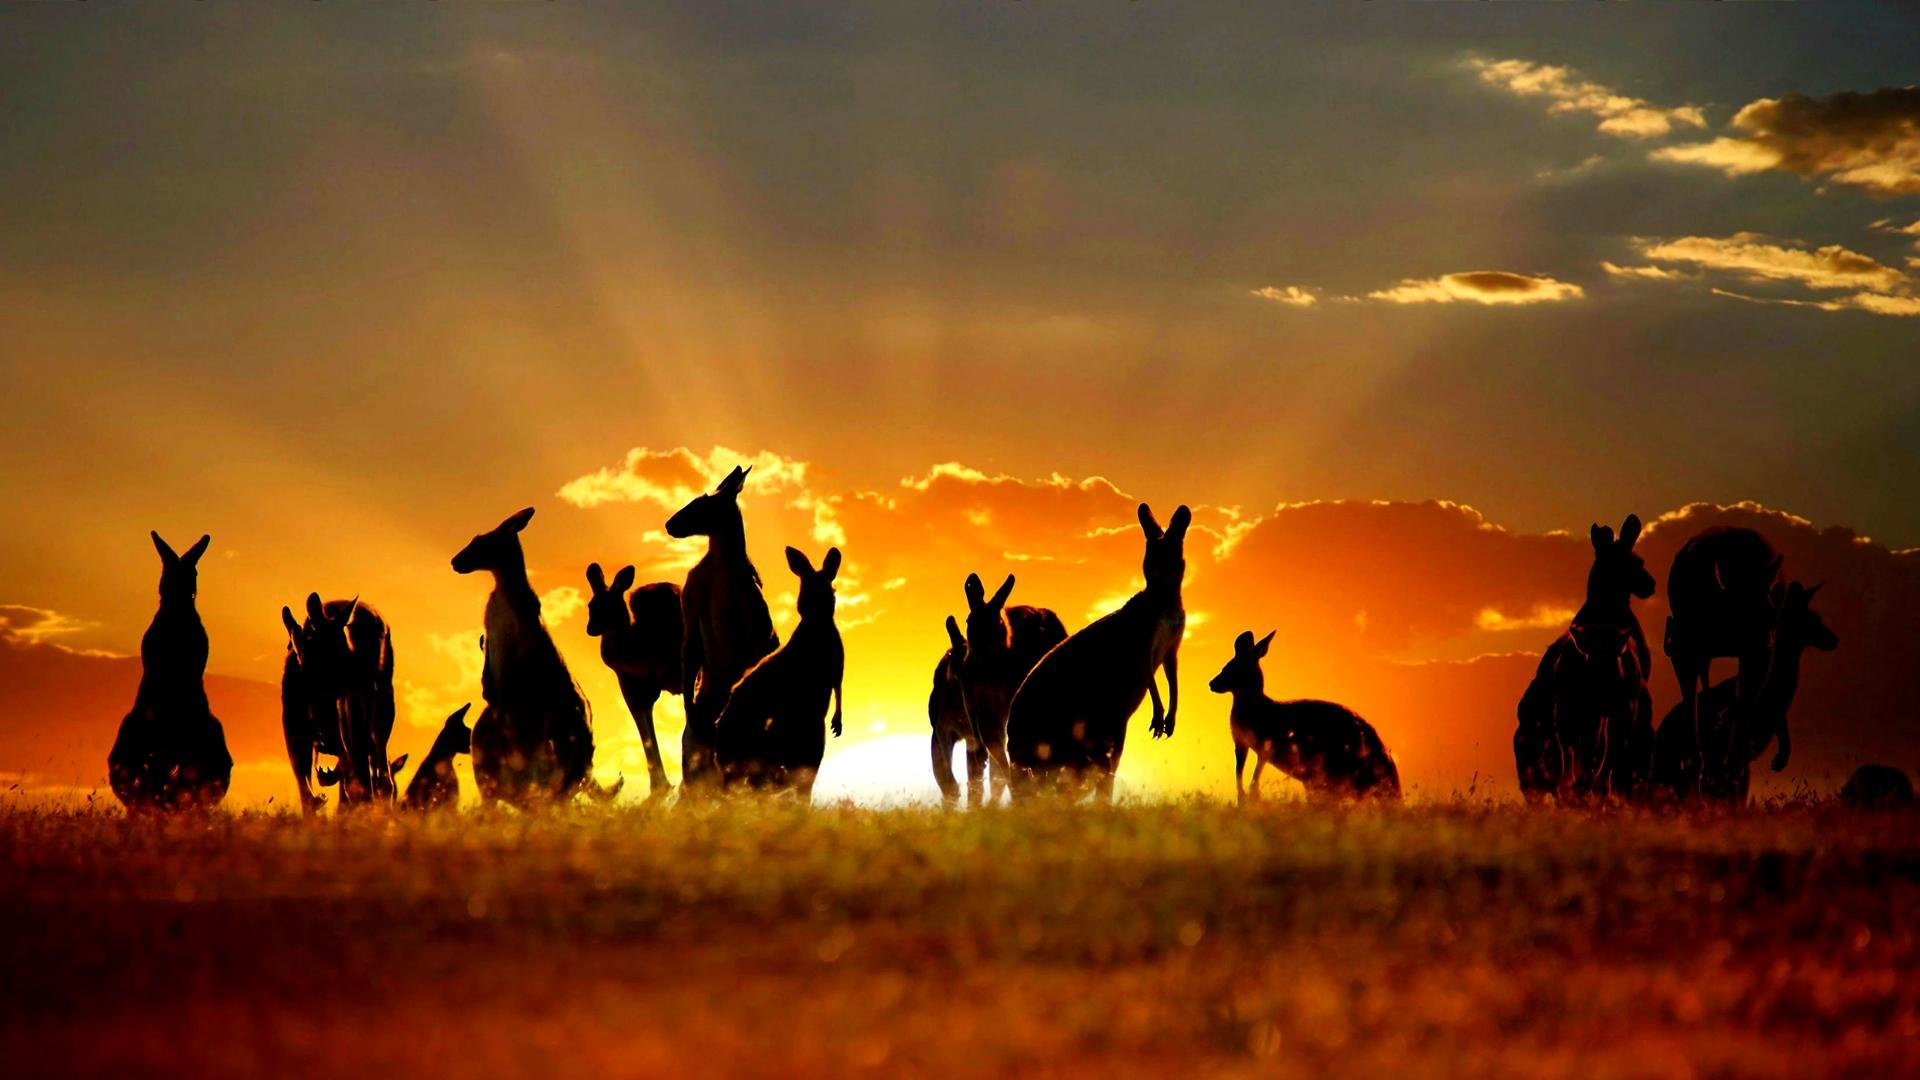 Download hd 1920x1080 Kangaroo PC background ID:122493 for free